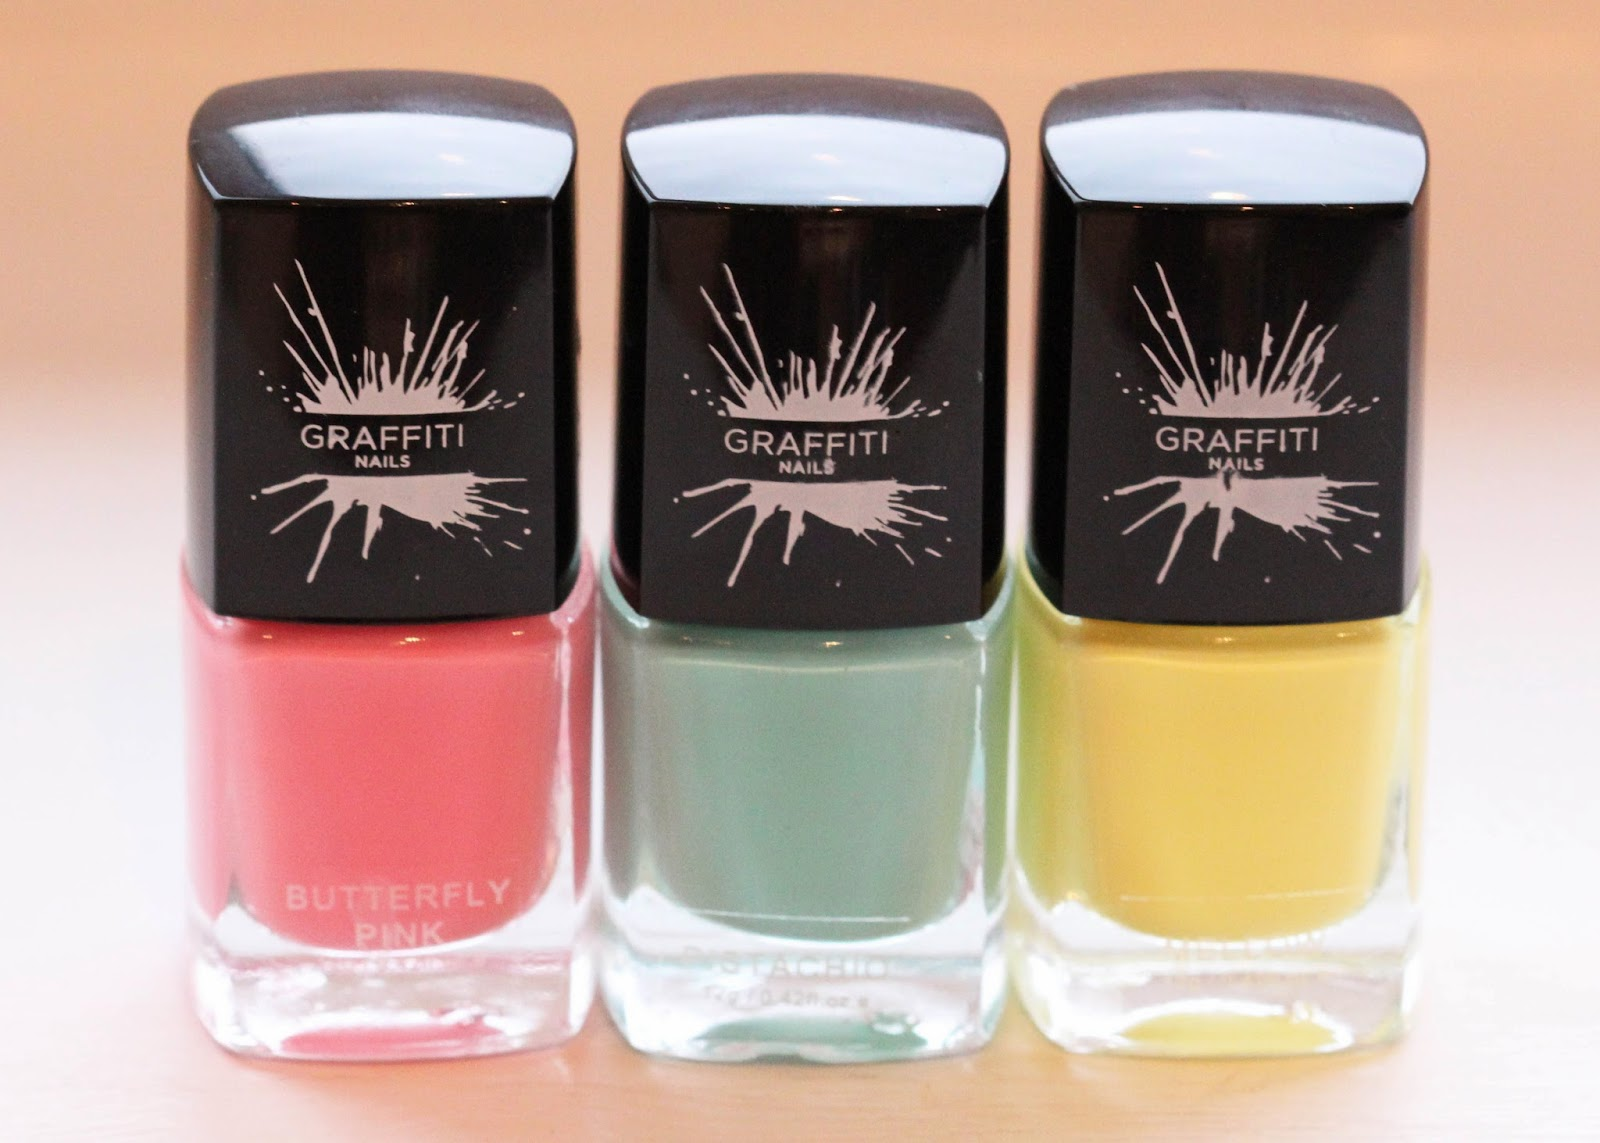 Graffiti Nails Butterfly Pink, Pistachio and Mellow review